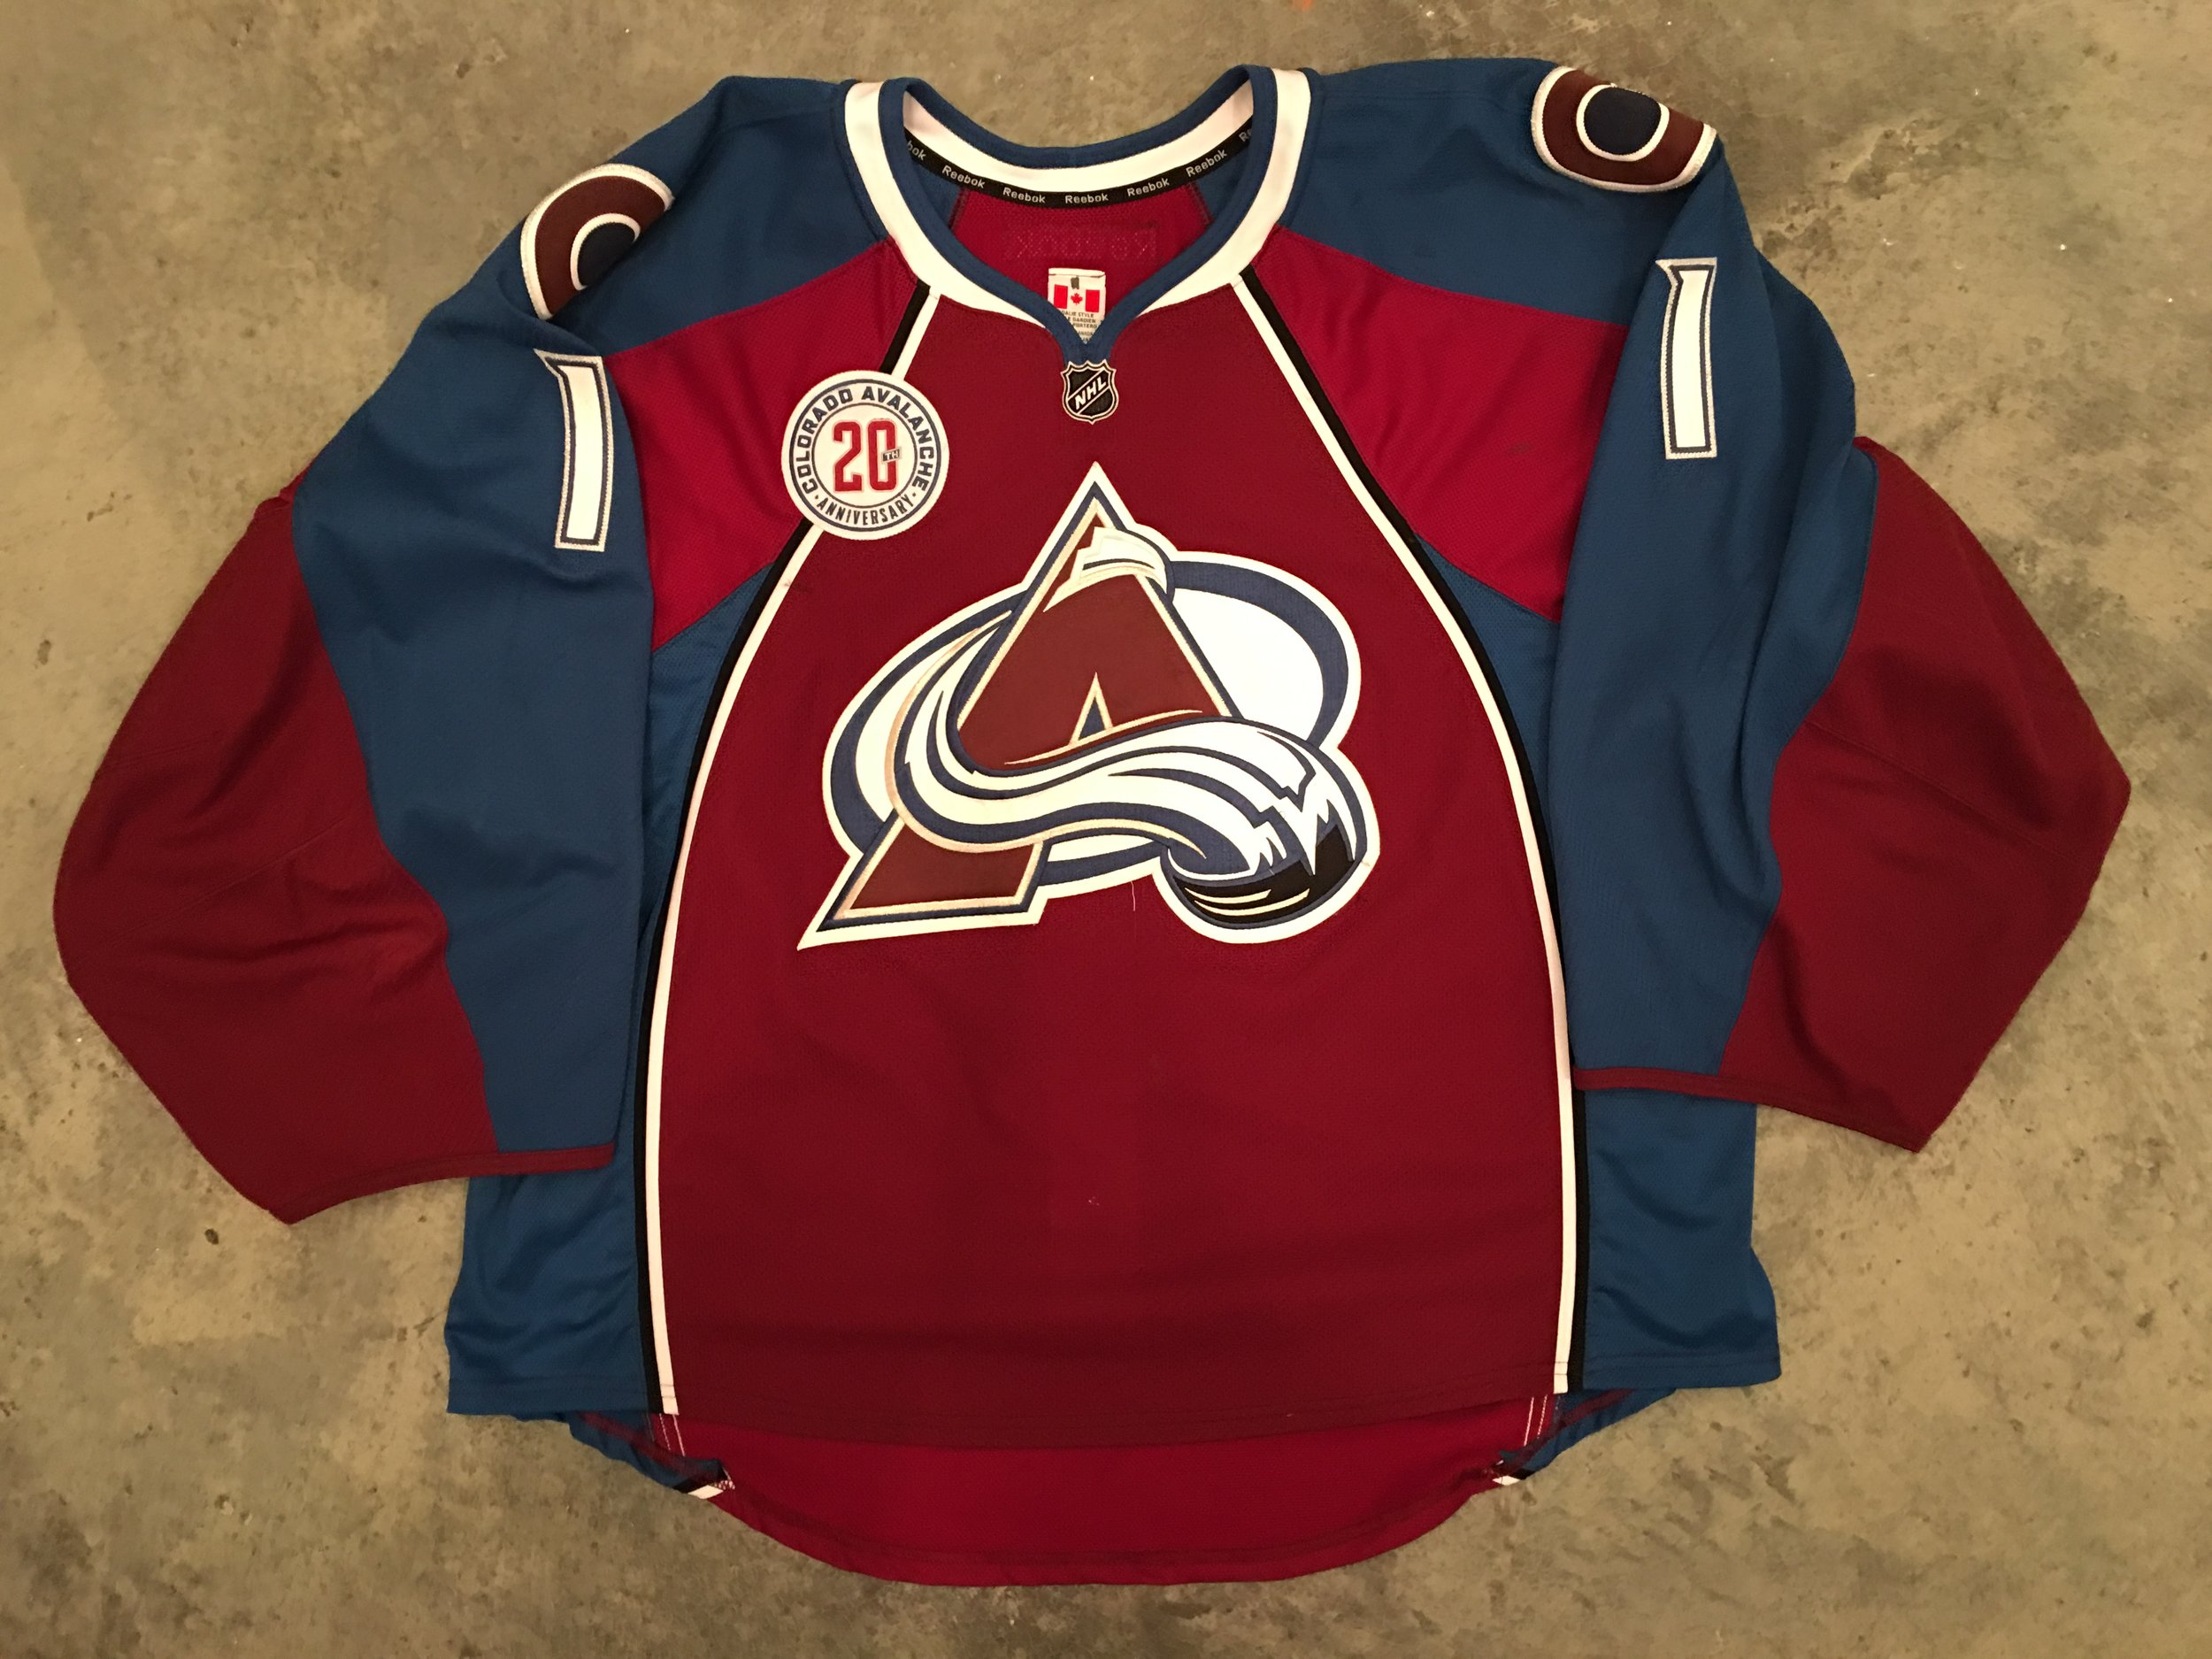 2015-16 Semyon Varlamov game worn home jersey with the Avalanche 20th anniversary patch